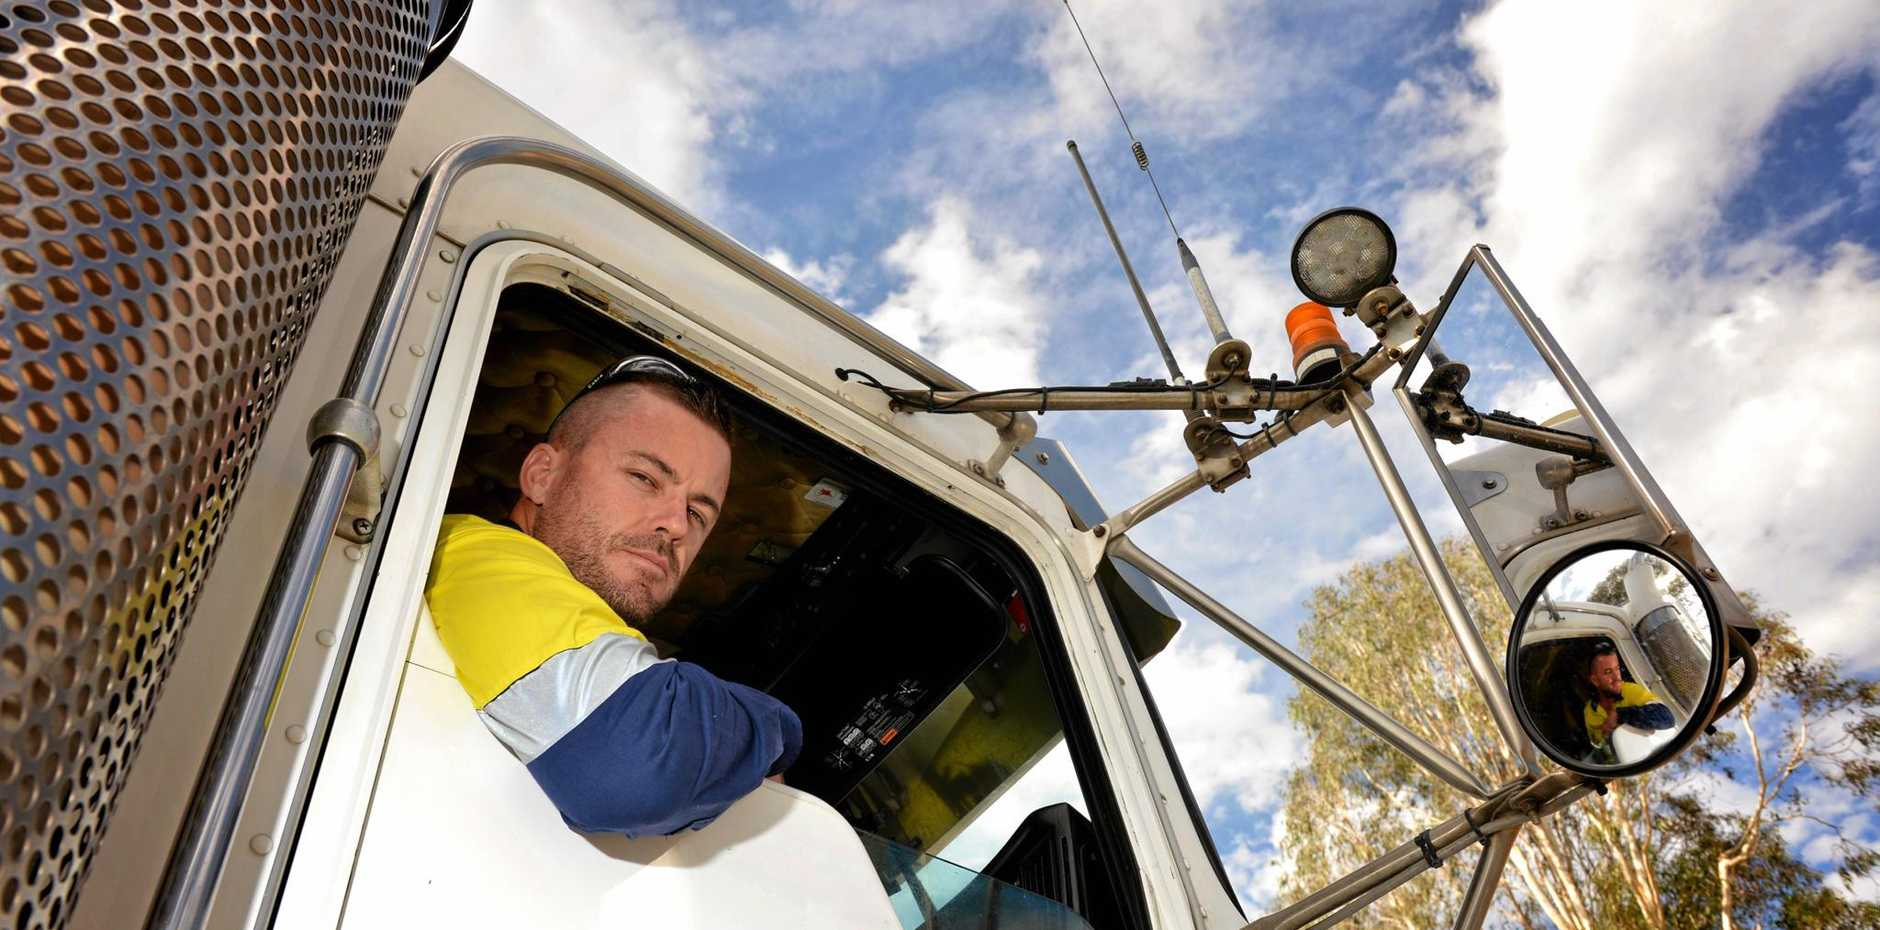 EYES WIDE OPEN: Gympie truck driver Warren Dyke says some car drivers are a highway horror story.